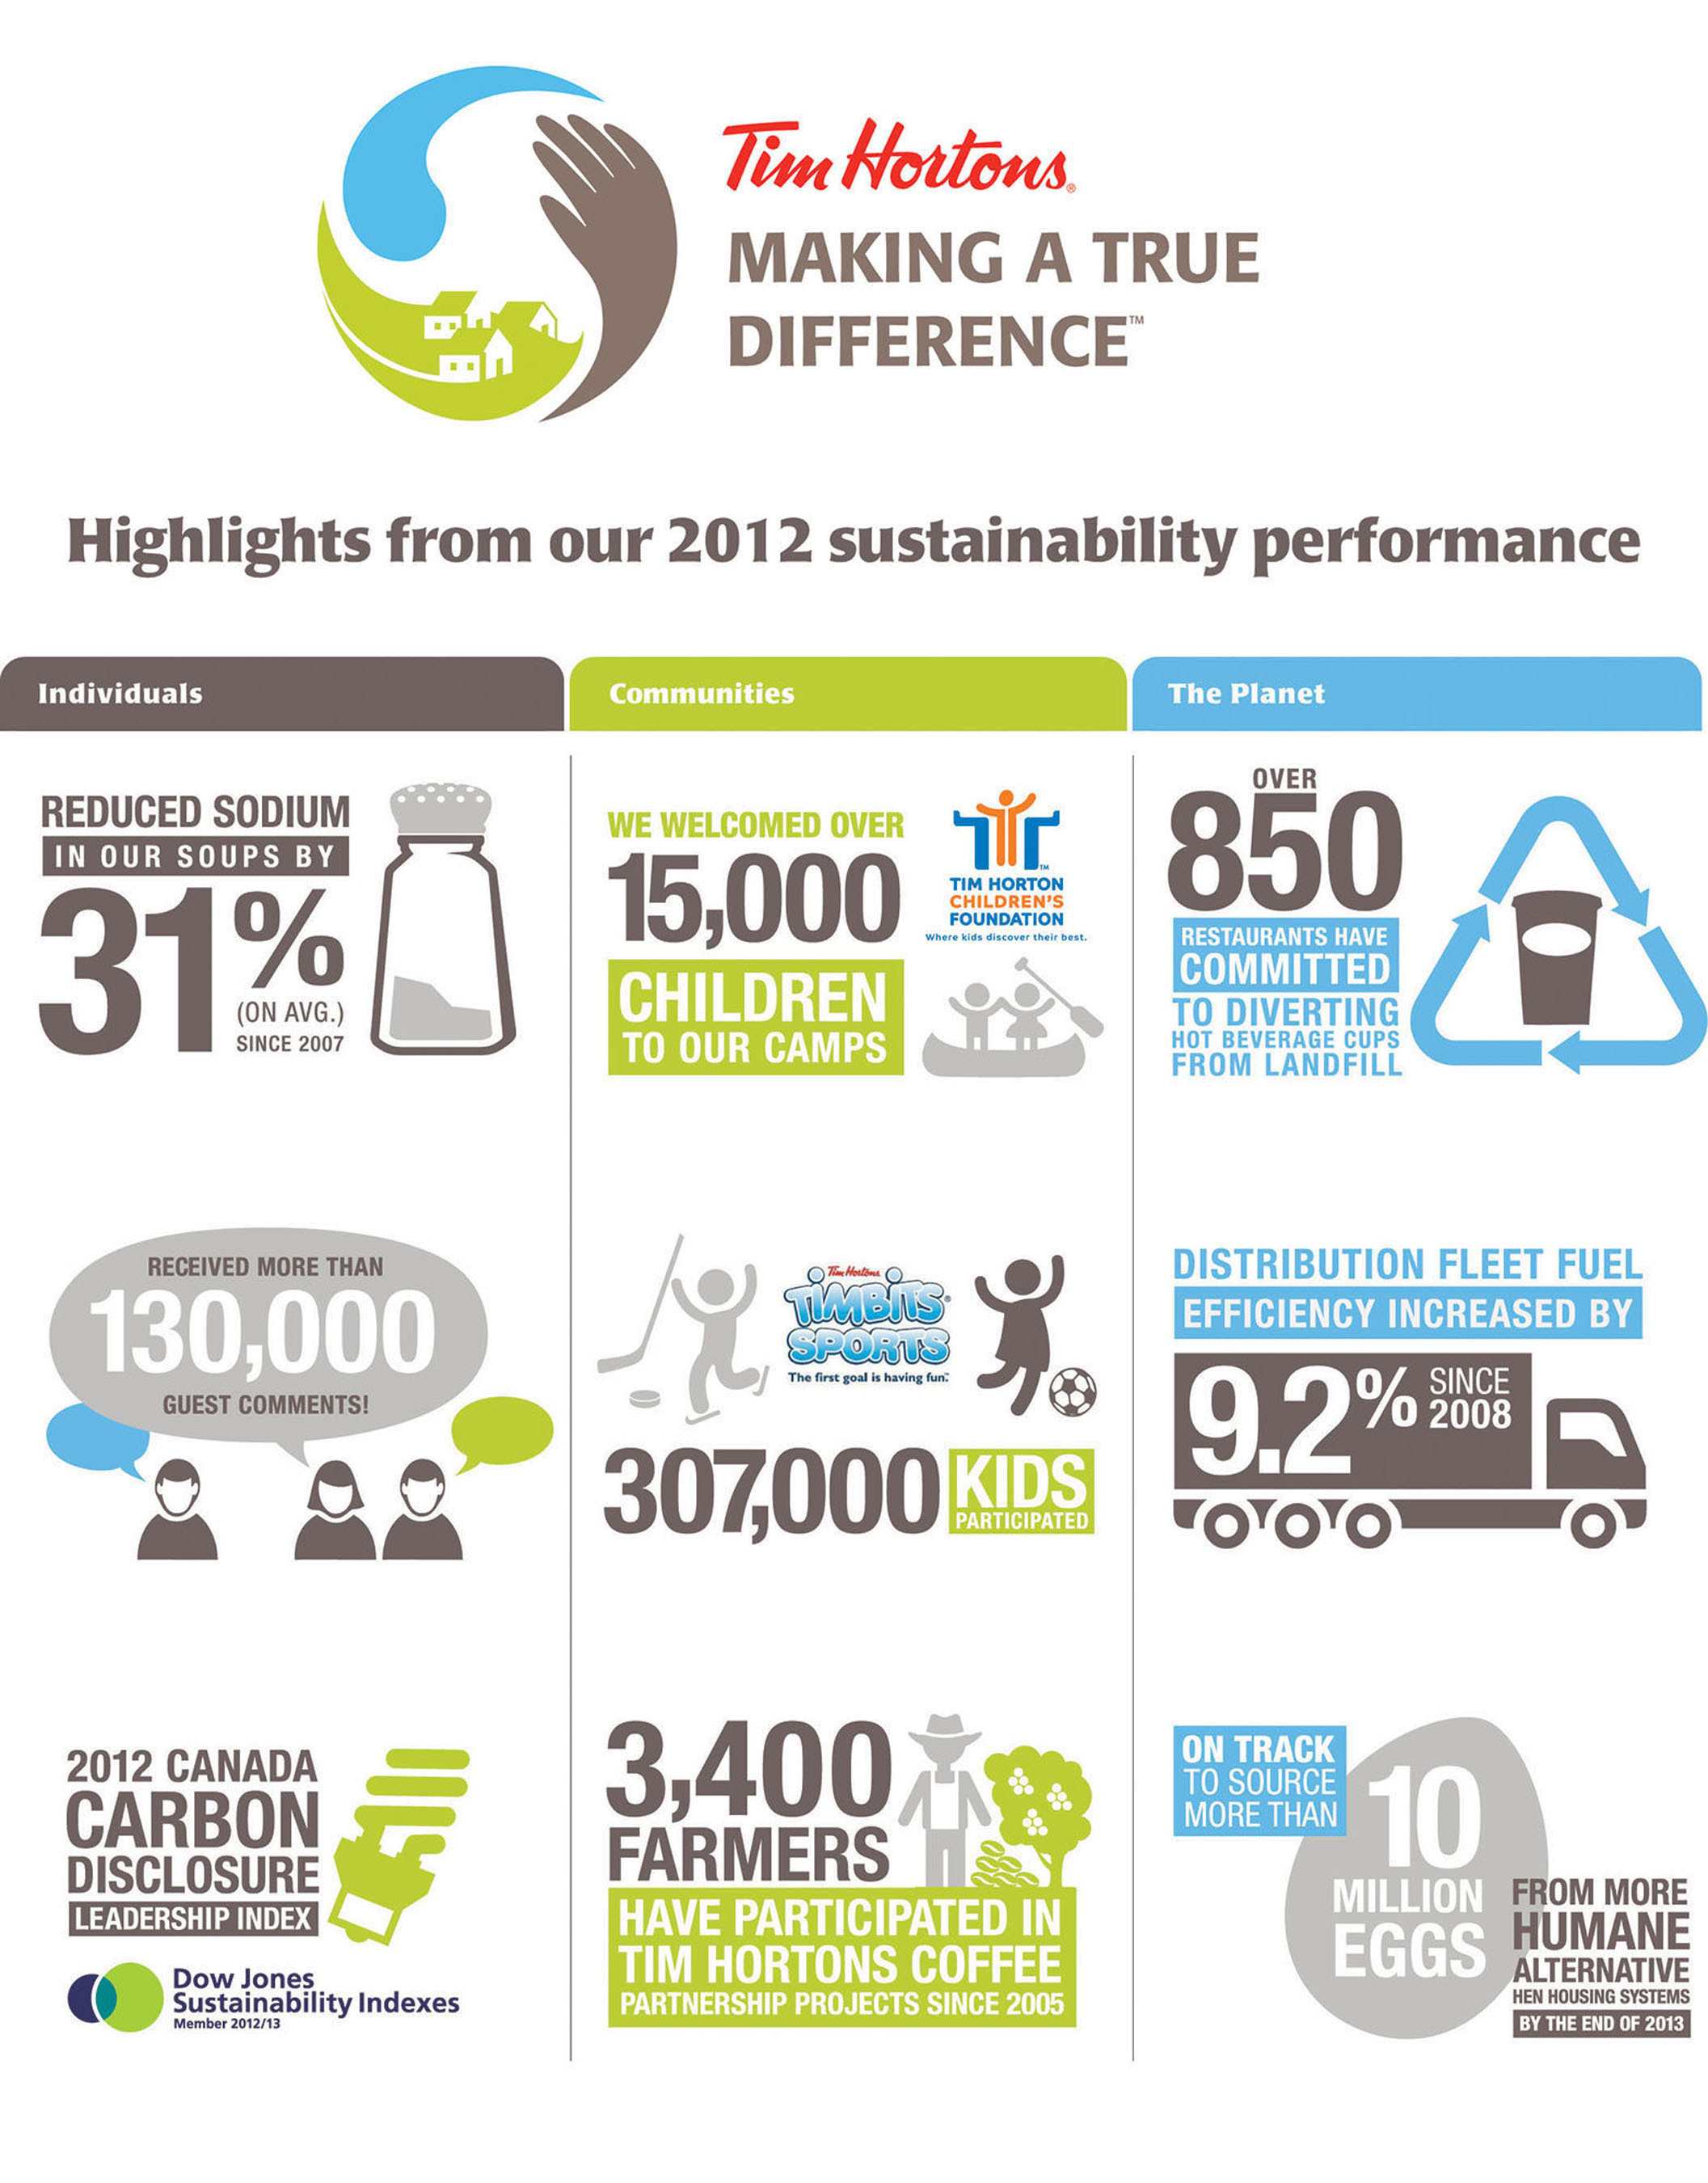 Highlights from our 2012 sustainability performance.  (PRNewsFoto/Tim Hortons Inc.)